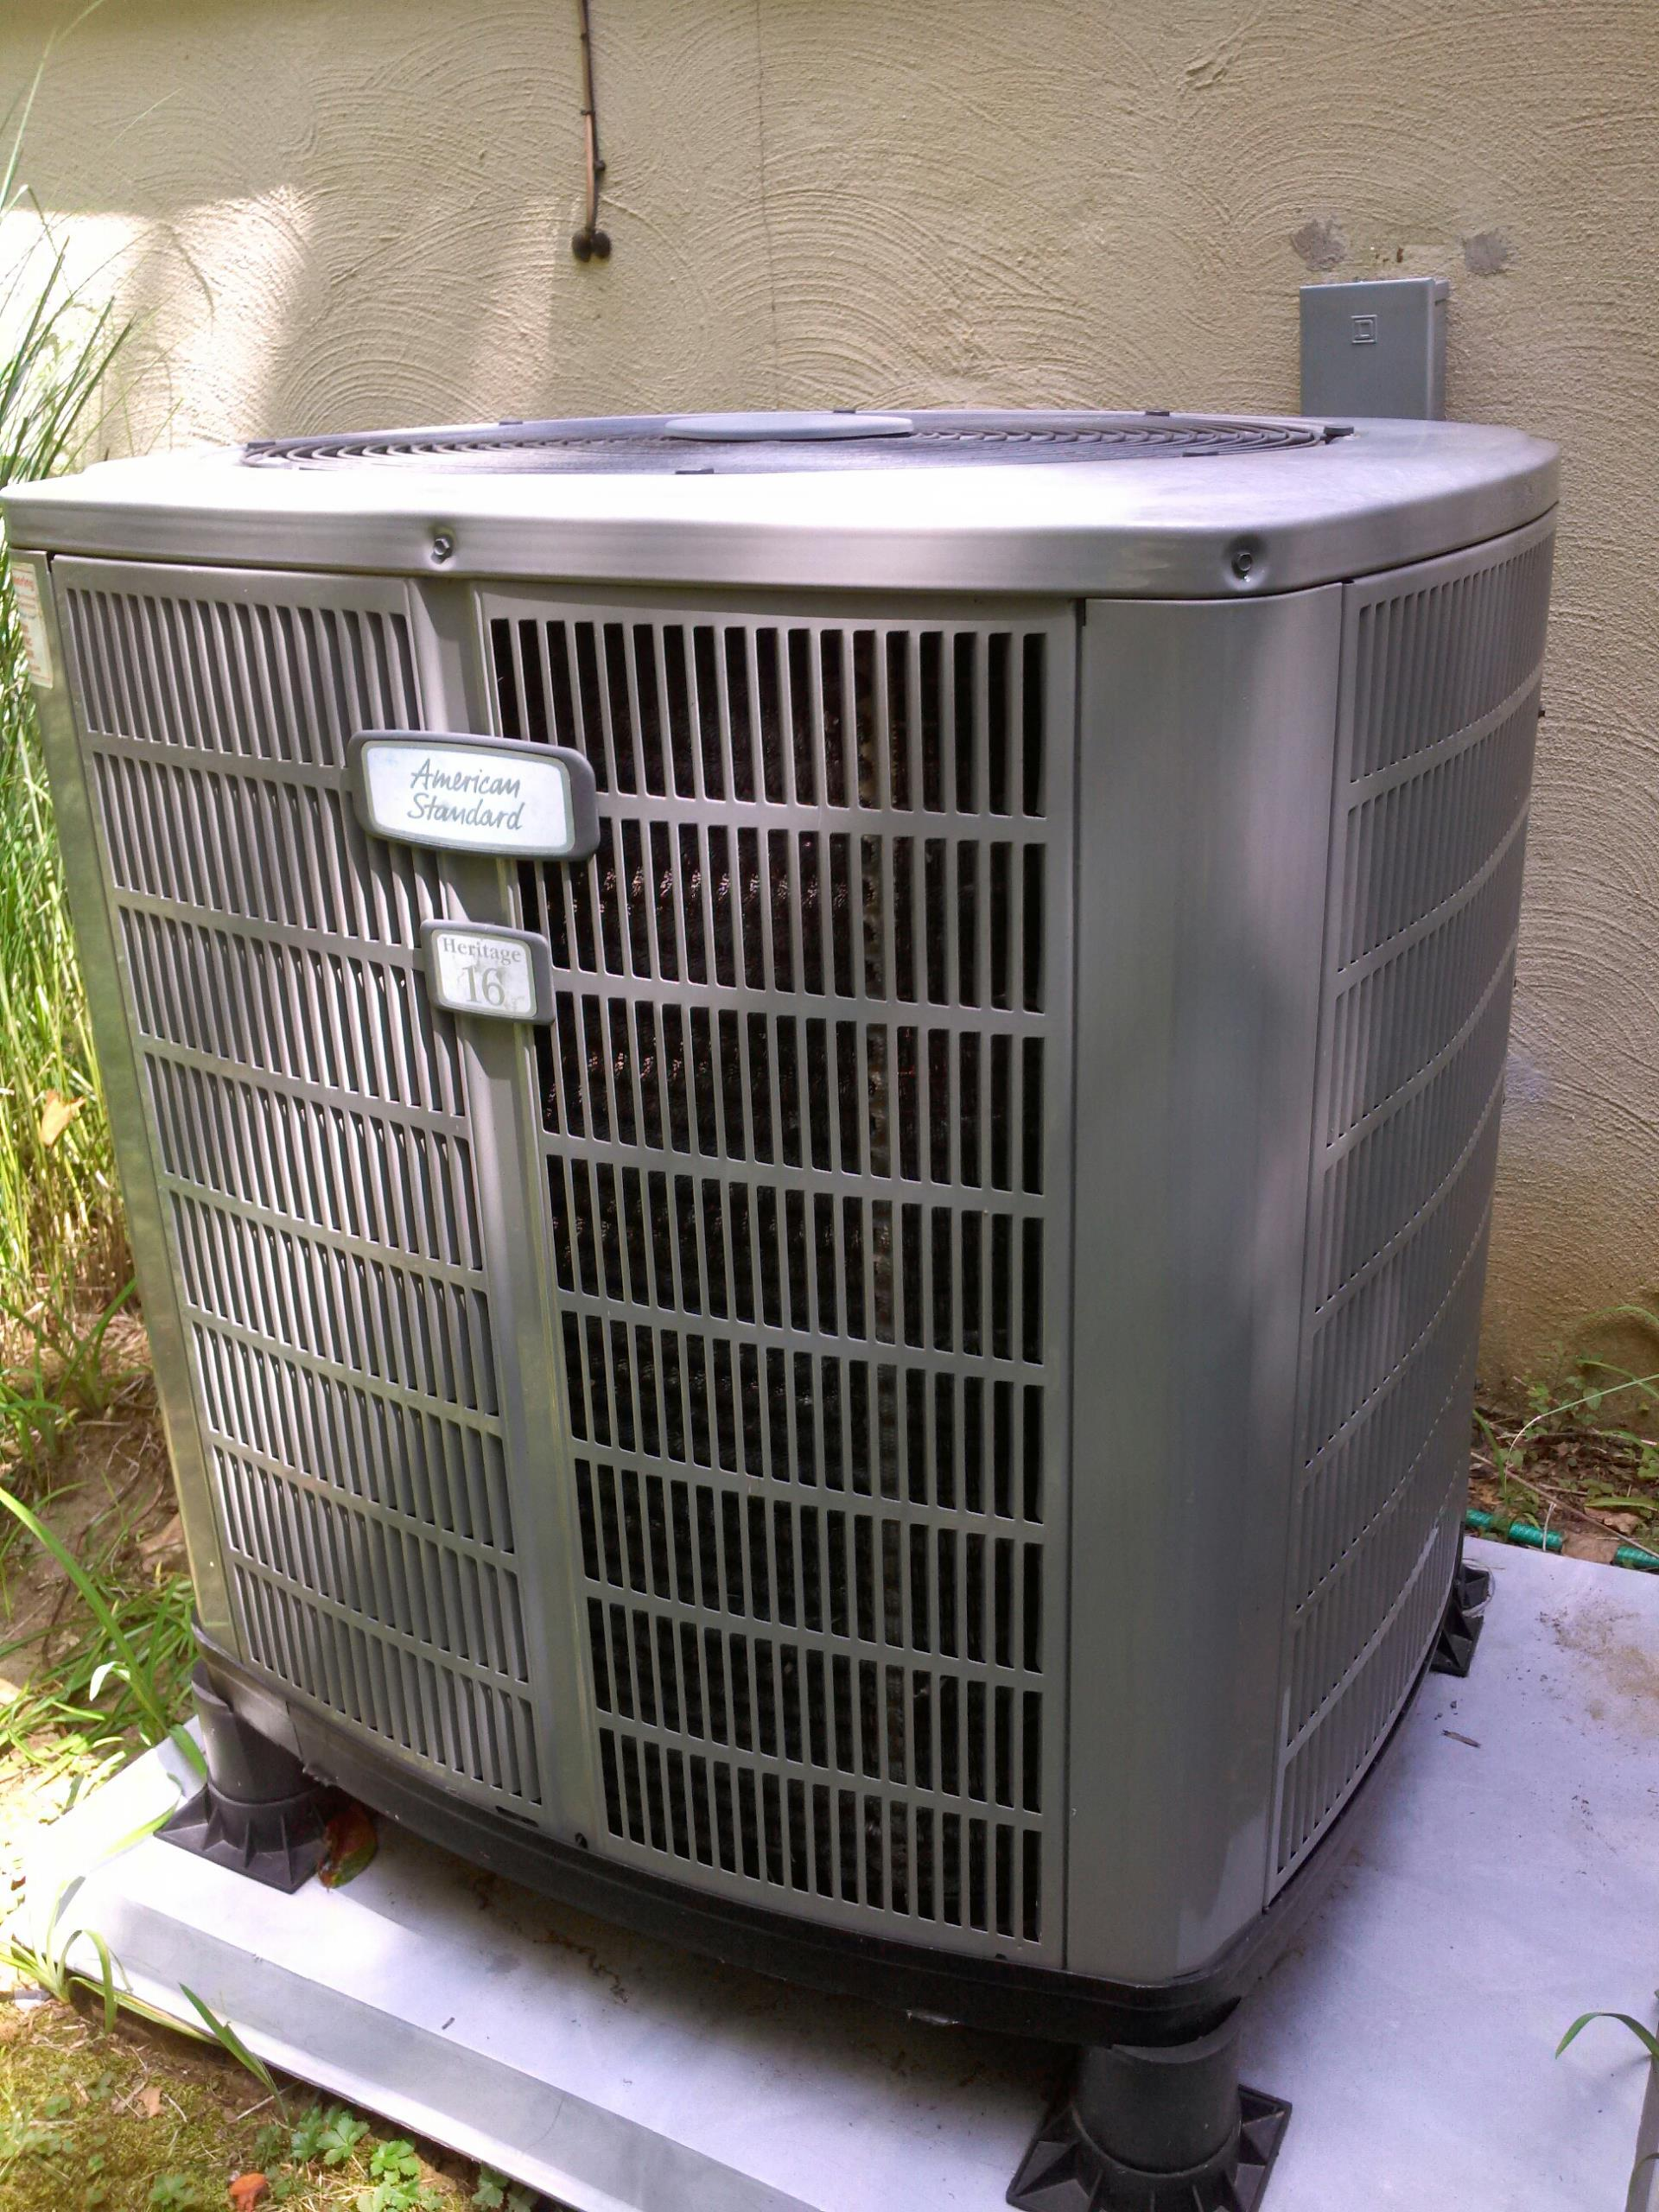 Crofton, MD - American Standard heat pump furnace heating & air conditioning system replacement installation repair service call Crofton Maryland